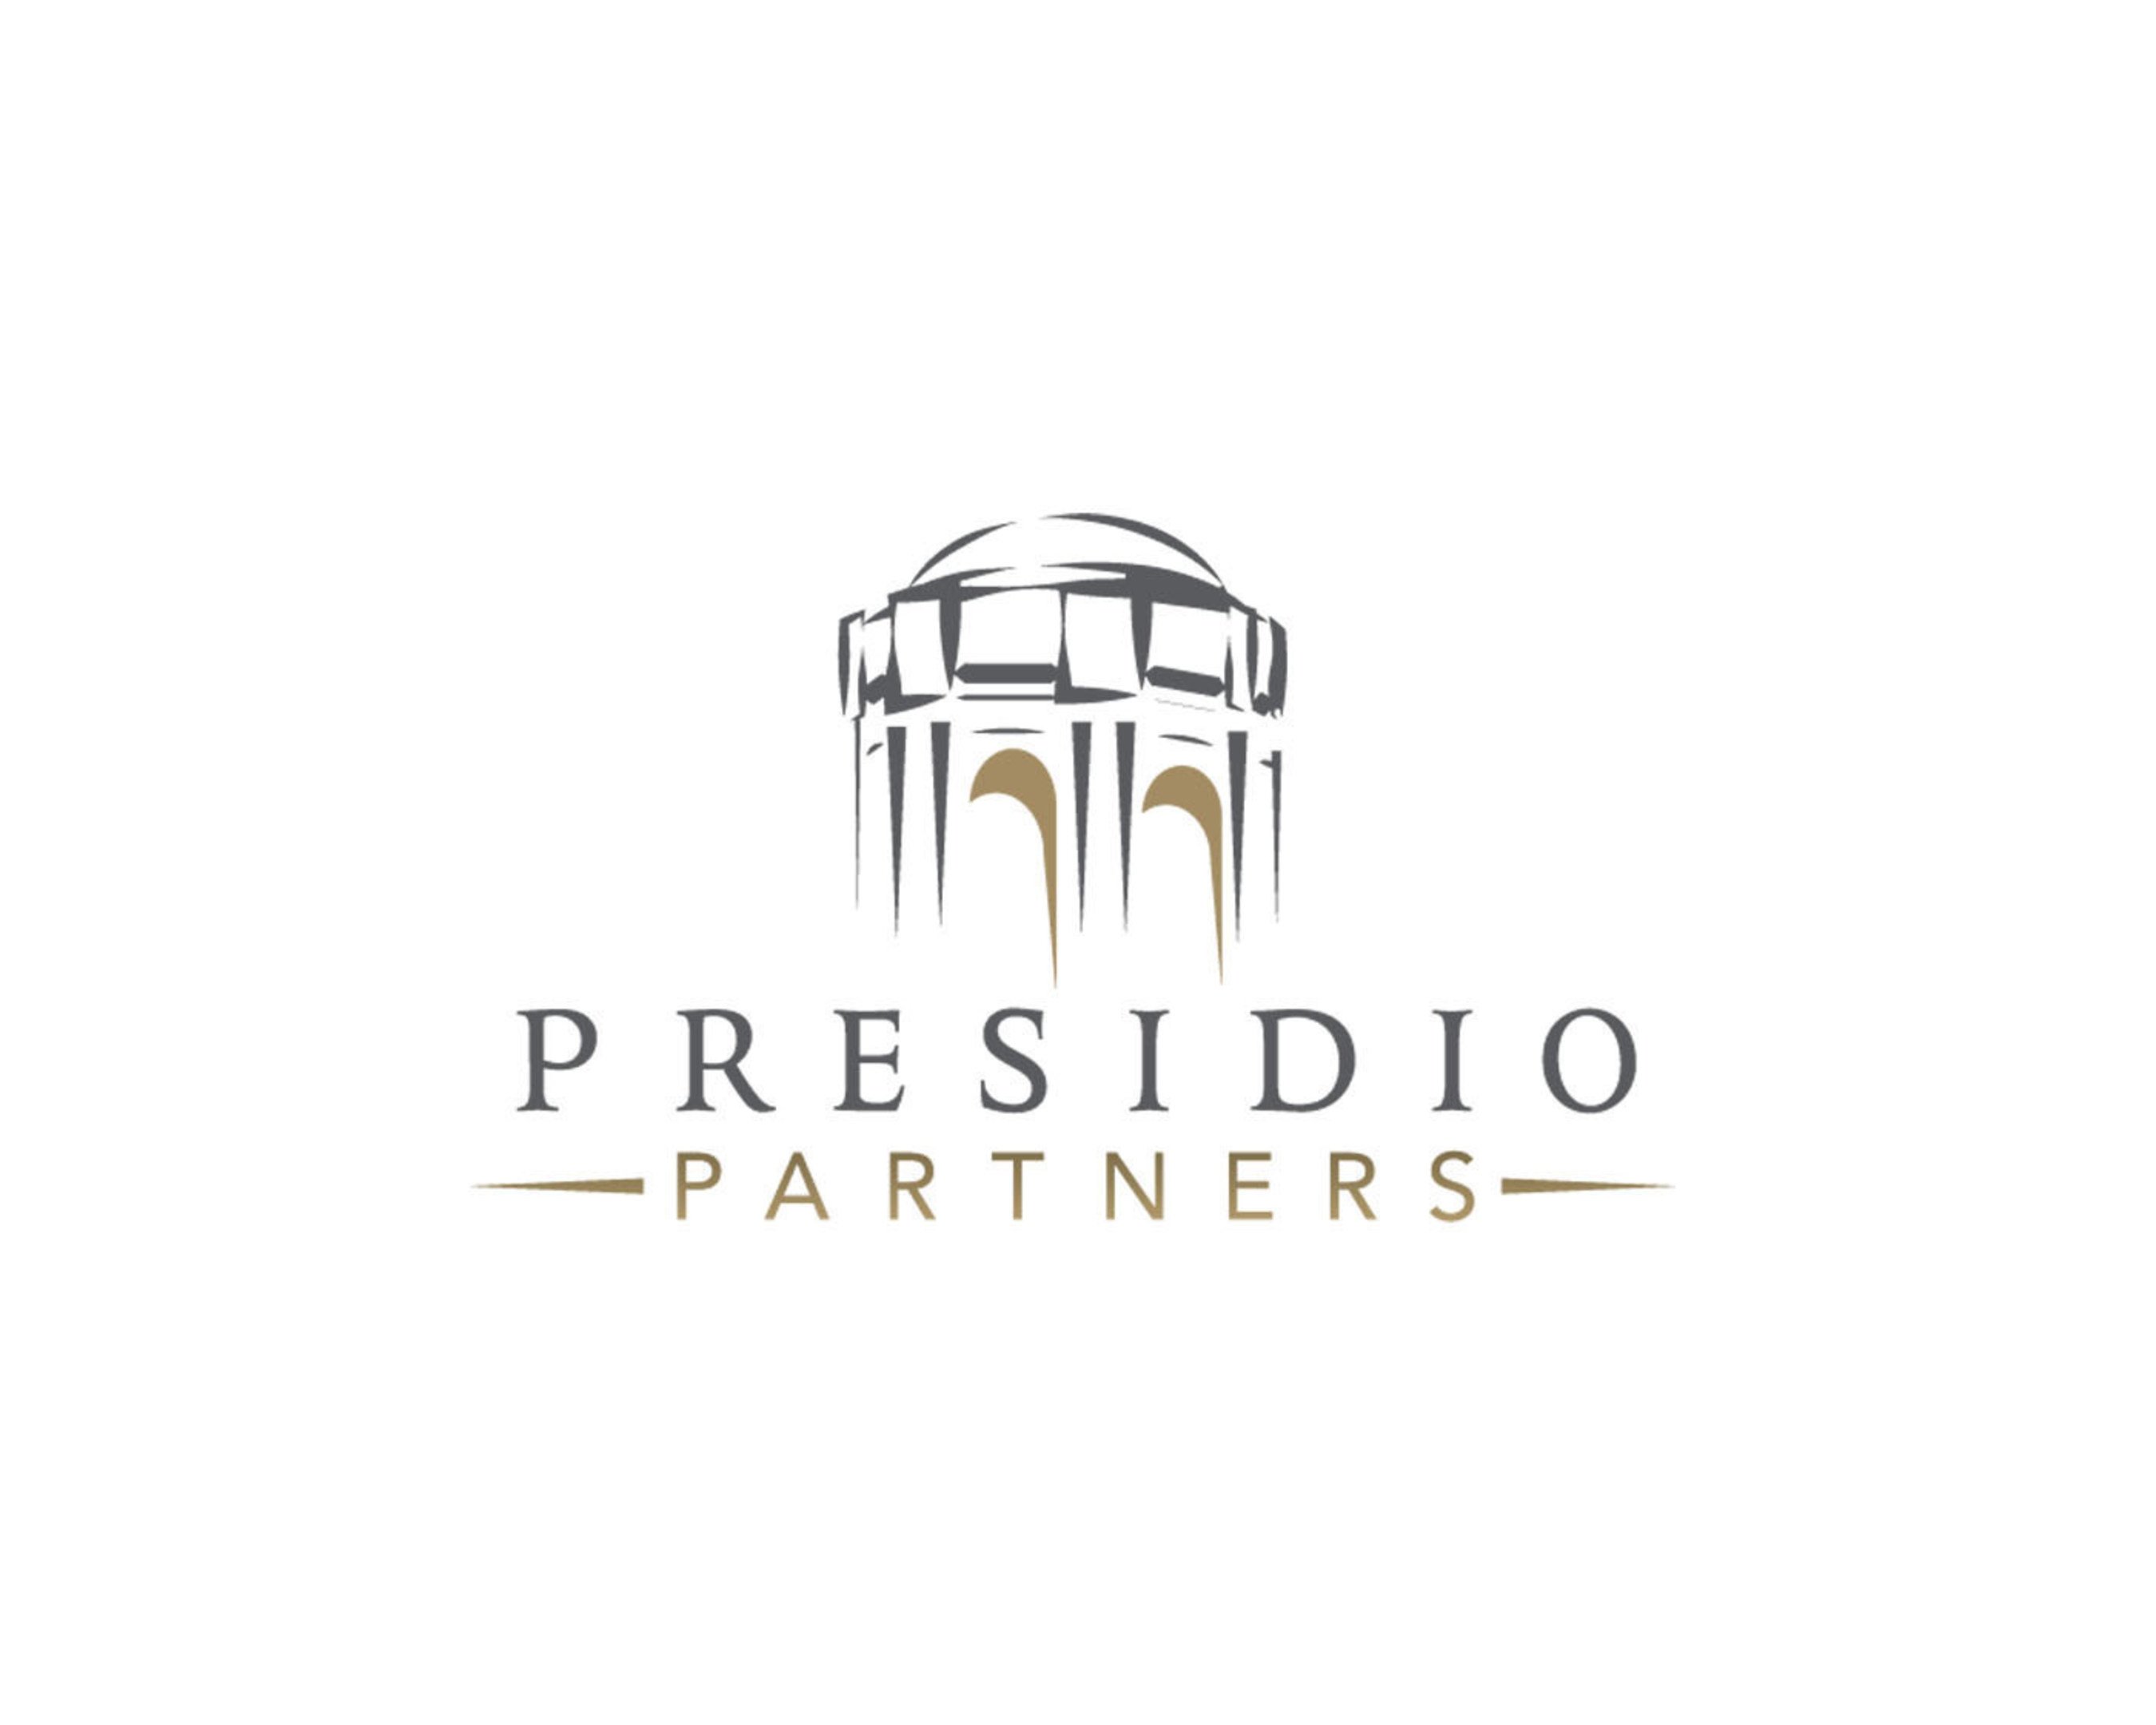 Presidio Partners Announces New Fund, Unveils New Corporate Identity, and Announces Additional Senior Management